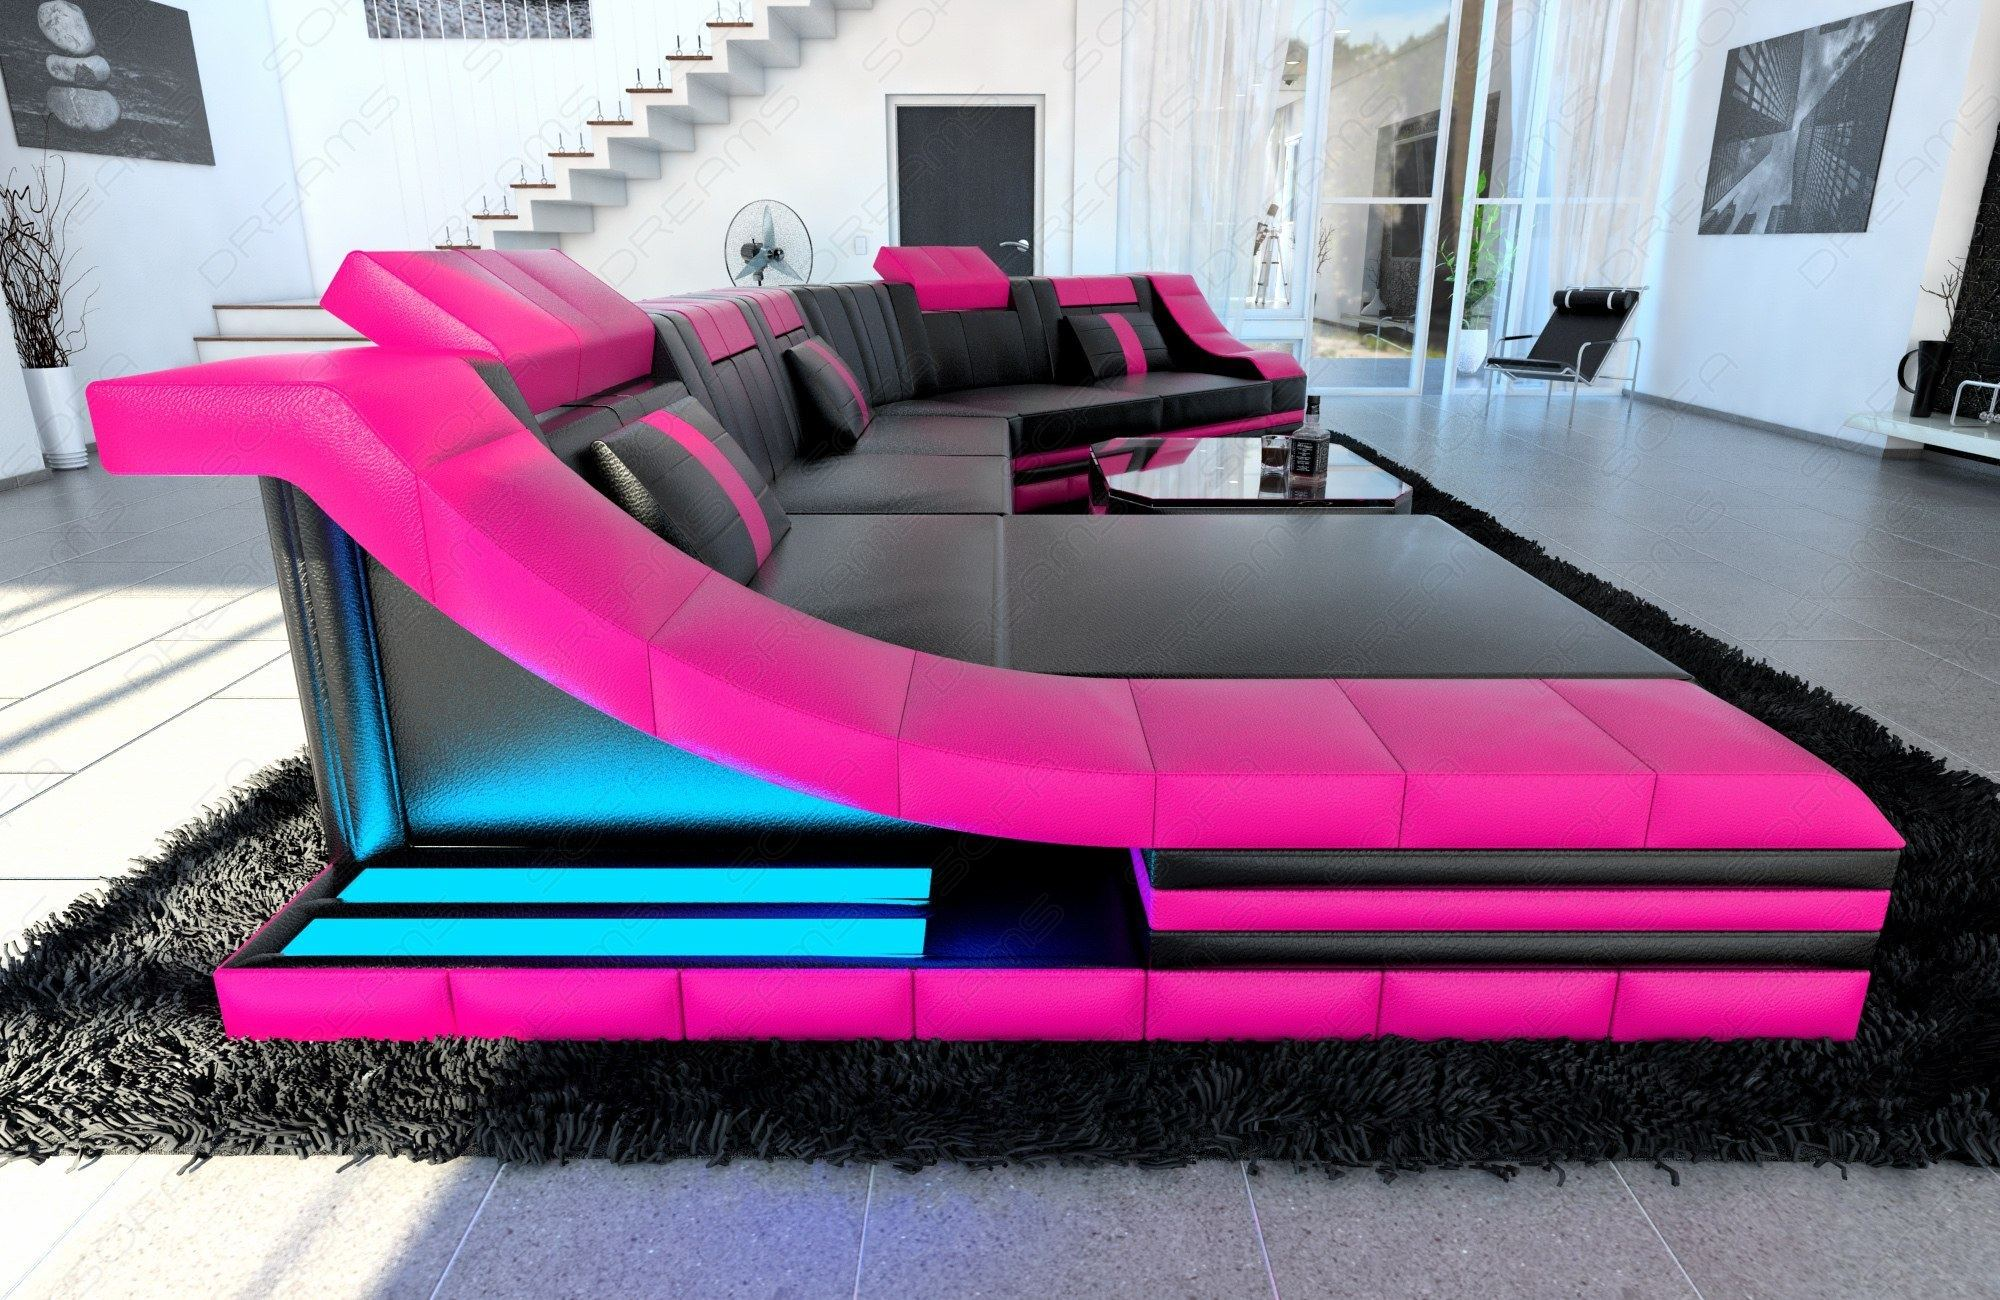 pink sectional sofa pink sectional sofa bonners furniture thesofa. Black Bedroom Furniture Sets. Home Design Ideas